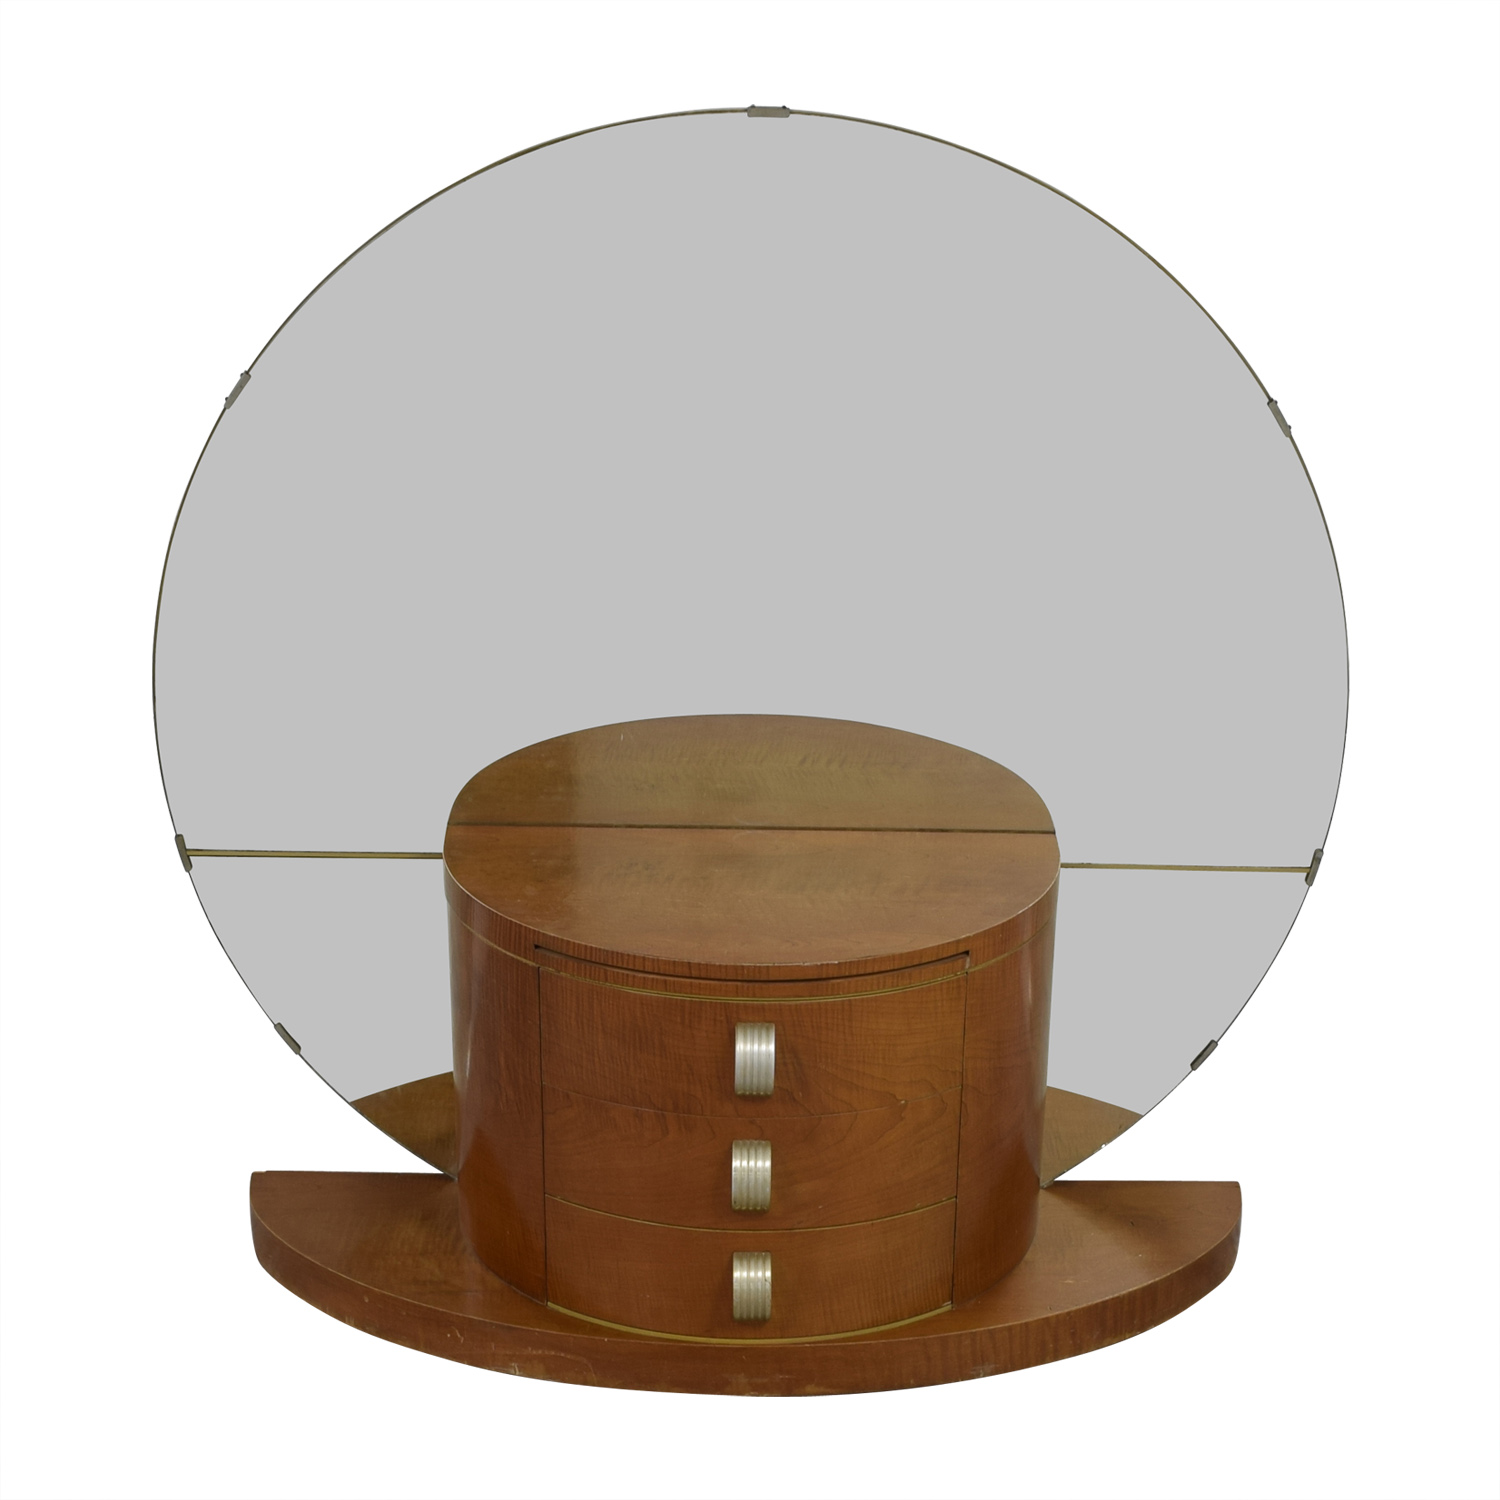 Modernage Modernage Art Deco Vanity with Large Round Mirror dimensions